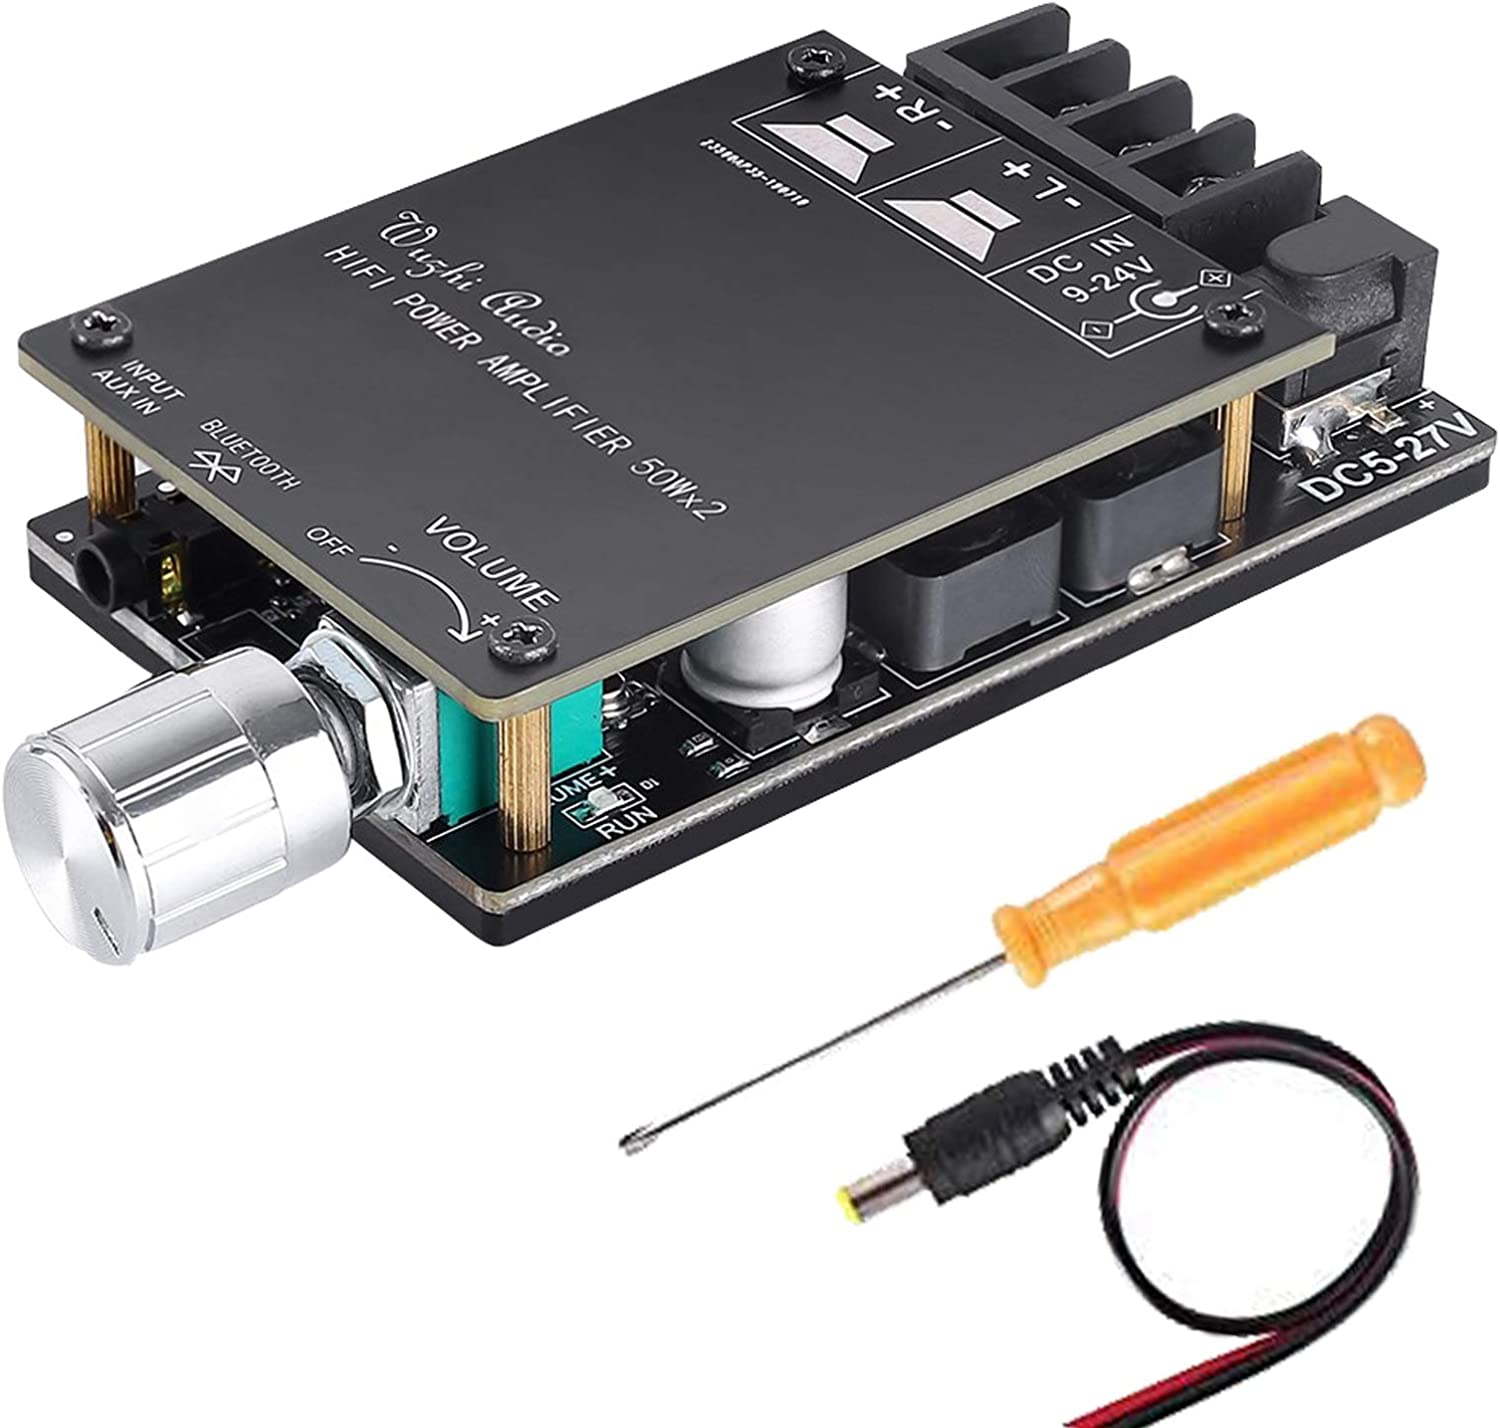 Amazon Com 100w Bluetooth Amplifier Board Tpa3116 Yemiugo 50w 50w Digital Stereo Aux Audio Amp Board Dual Channel Dc 5v 27v Lc Filter Technique Password Free Connection Home Audio Theater